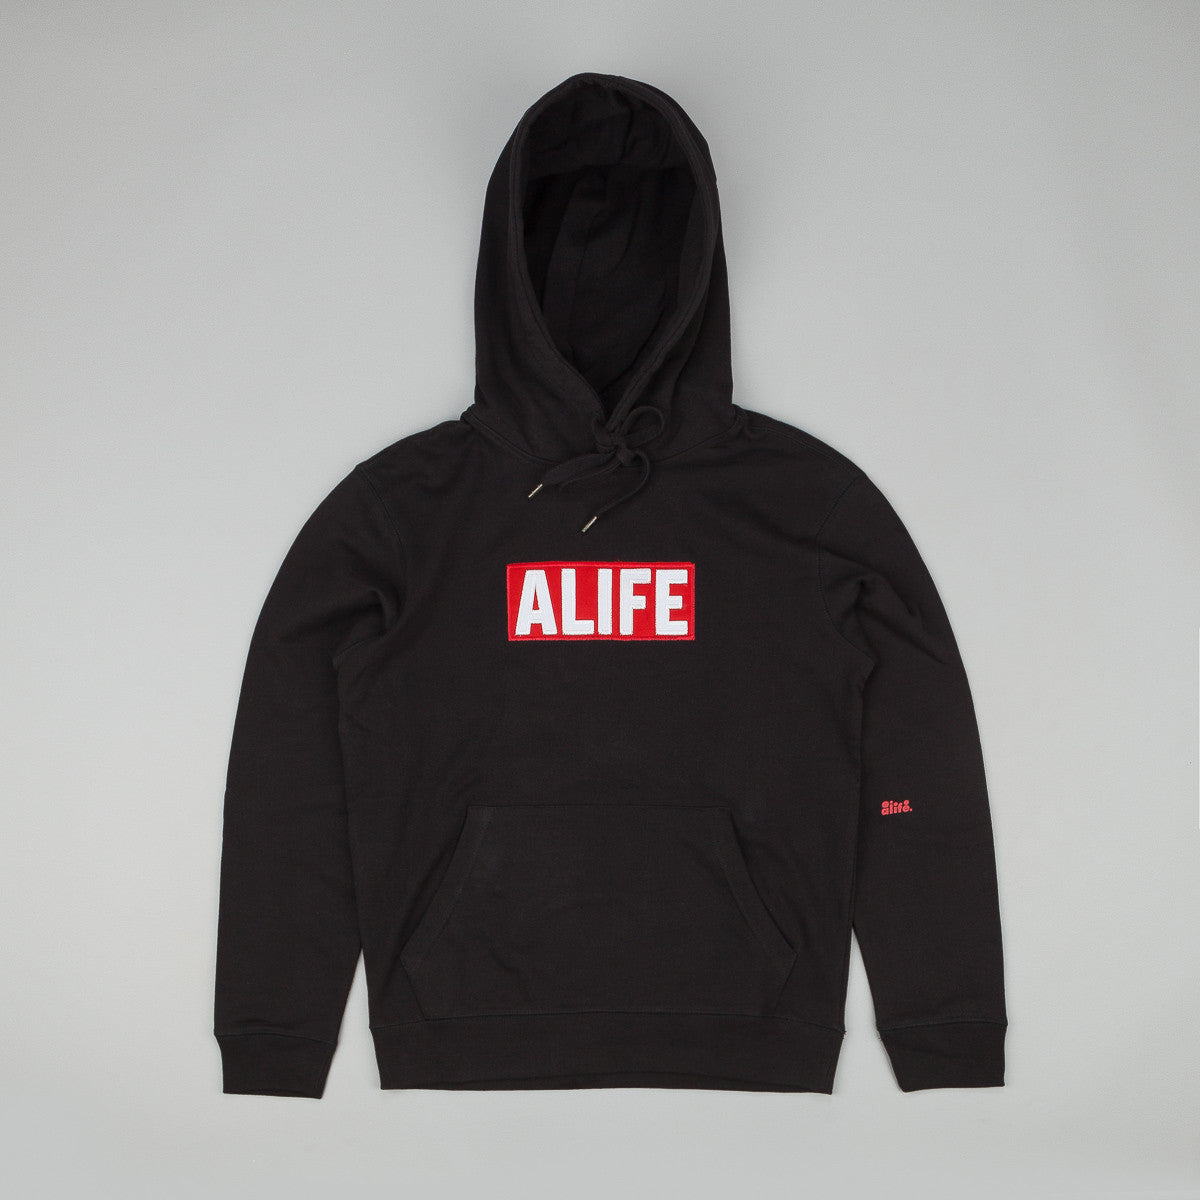 Alife Basic Stuck Up Pullover Hooded Sweatshirt - Black